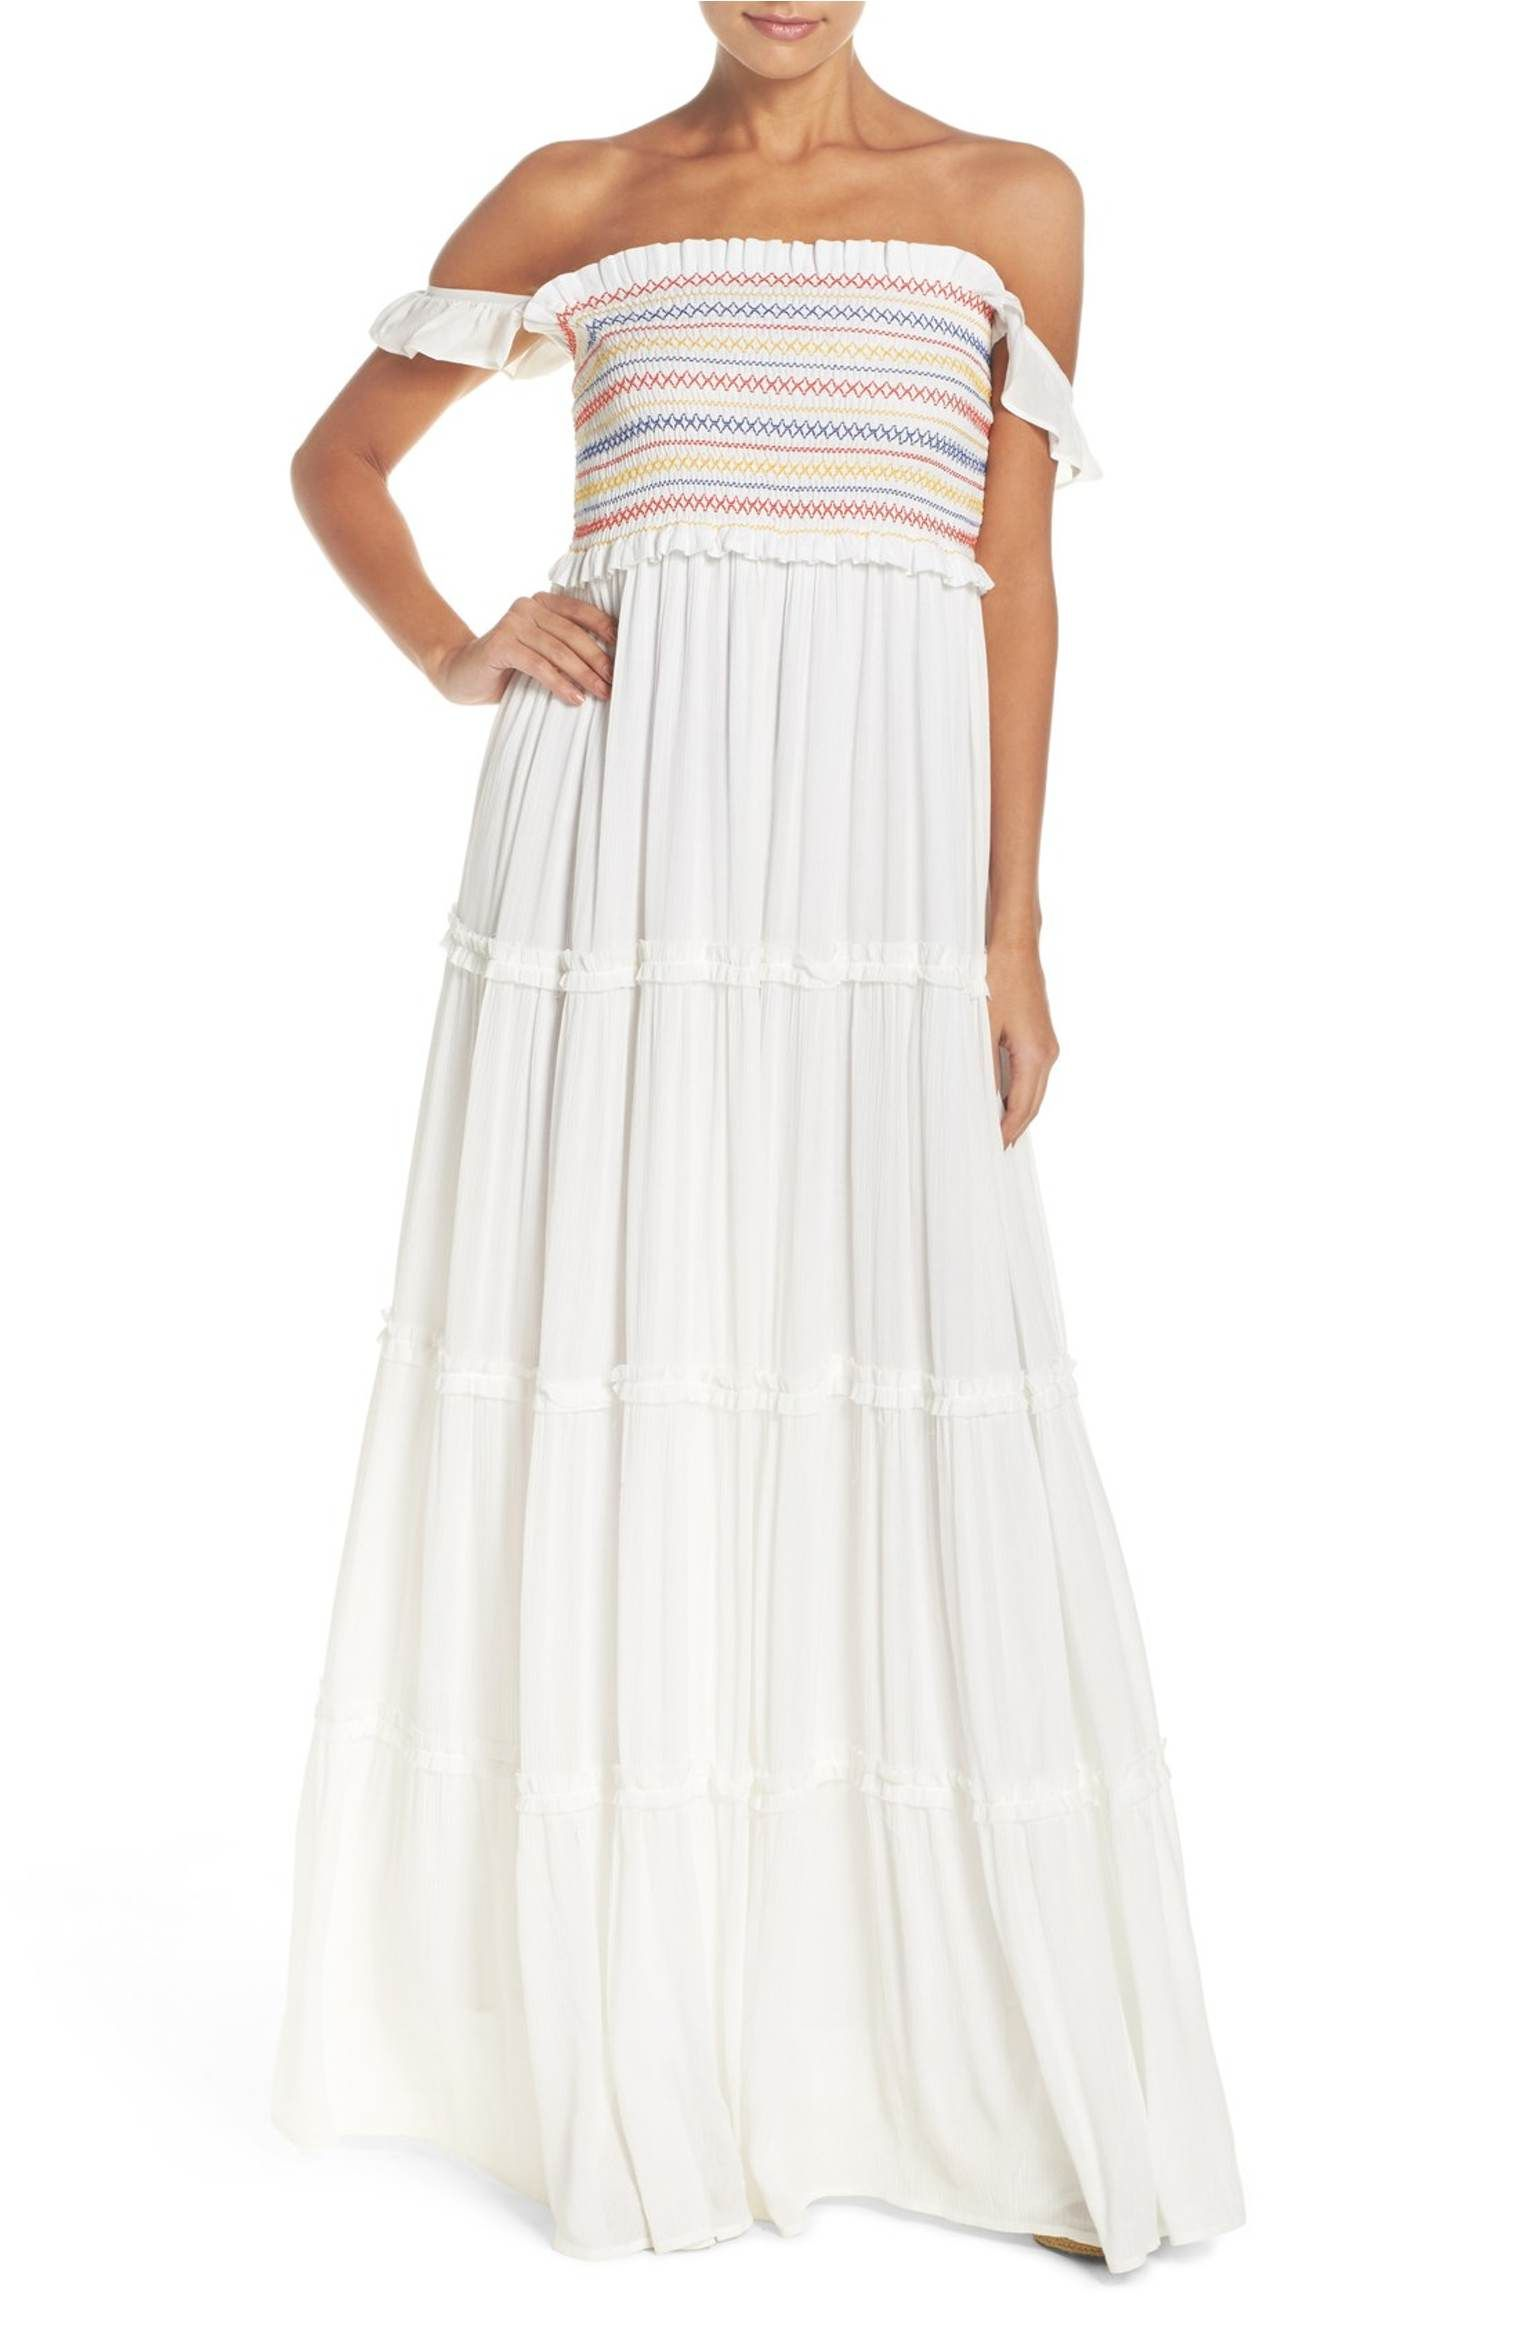 377758df5a Main Image - Tory Burch Smocked Cover-Up Maxi Dress